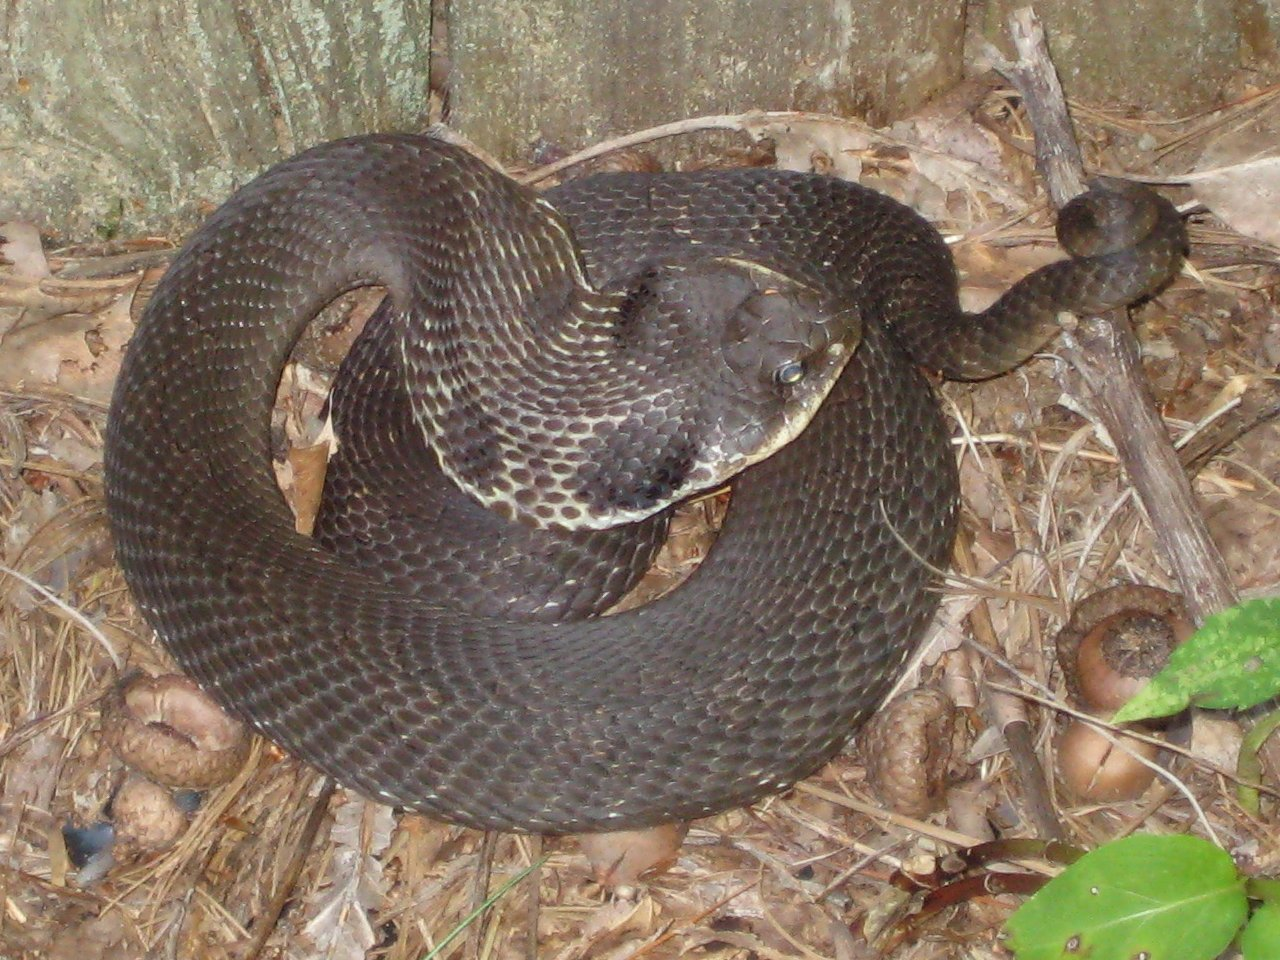 Hooded snake of mystery in New